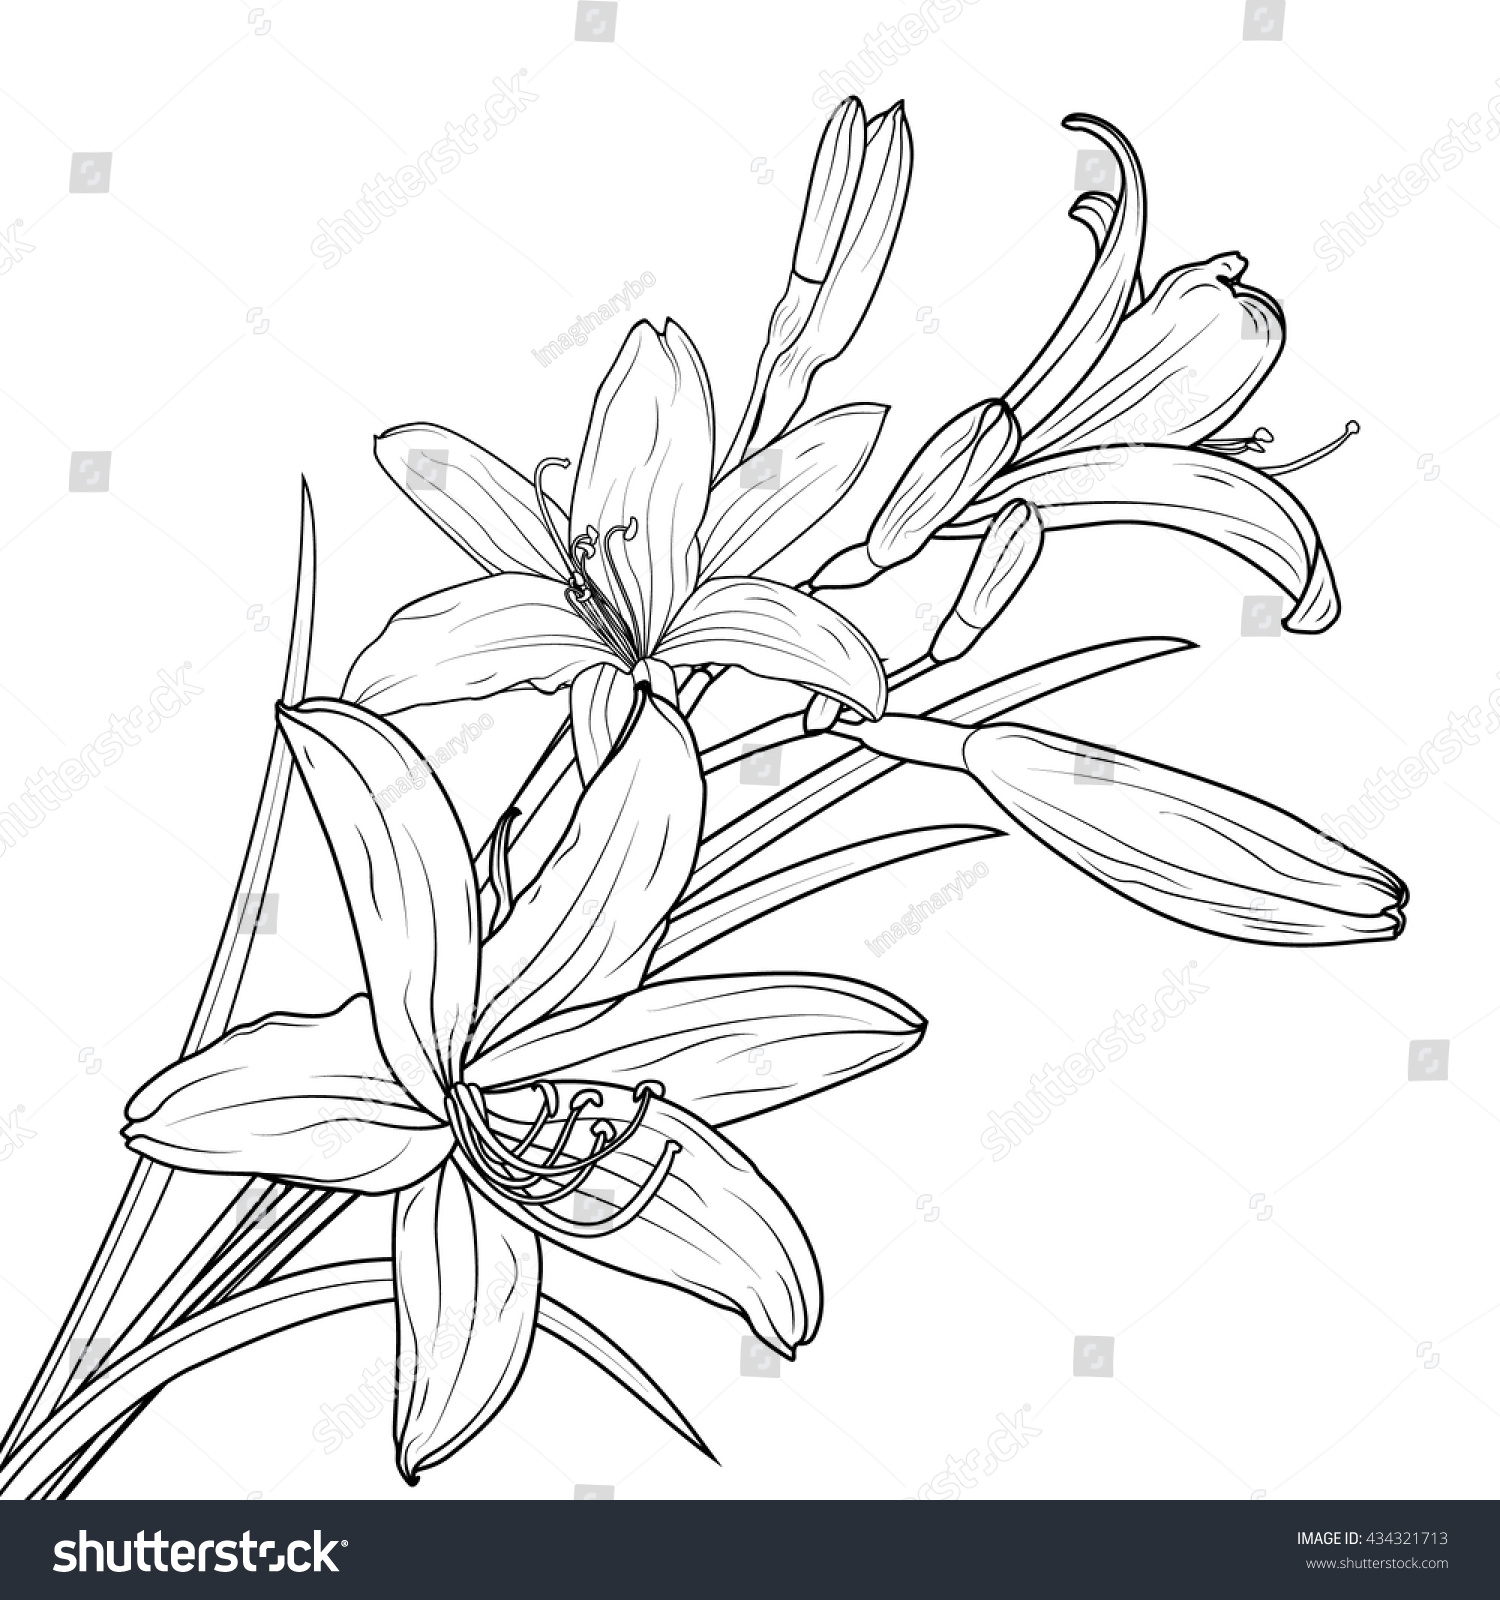 Isolated lily flowers bouquet blooming and buds on stem with leaves black and white